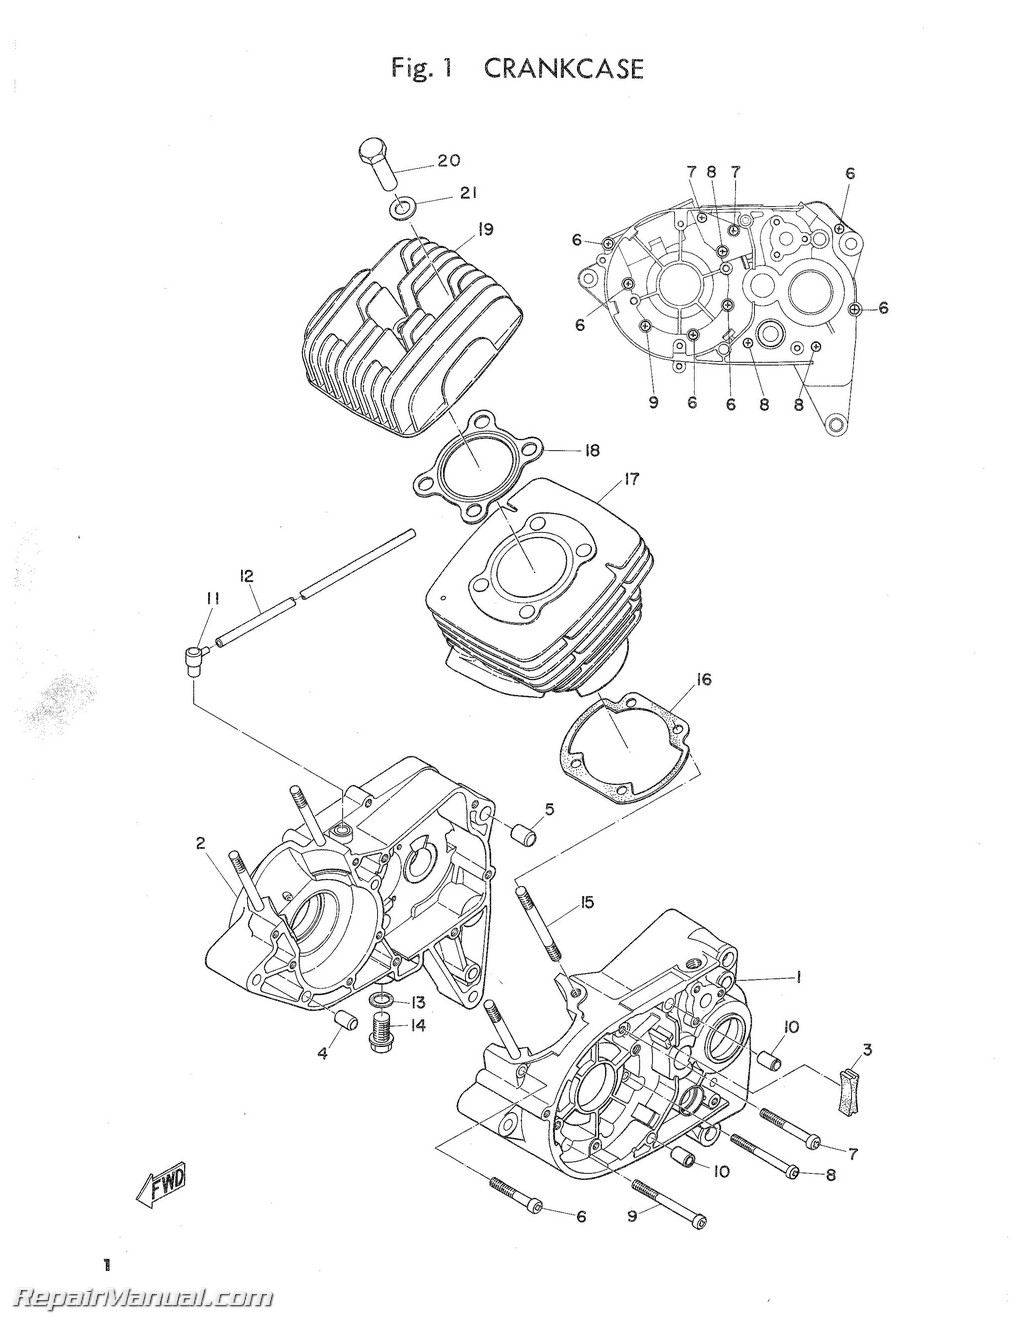 Yamaha Ct1 Series Parts Manual